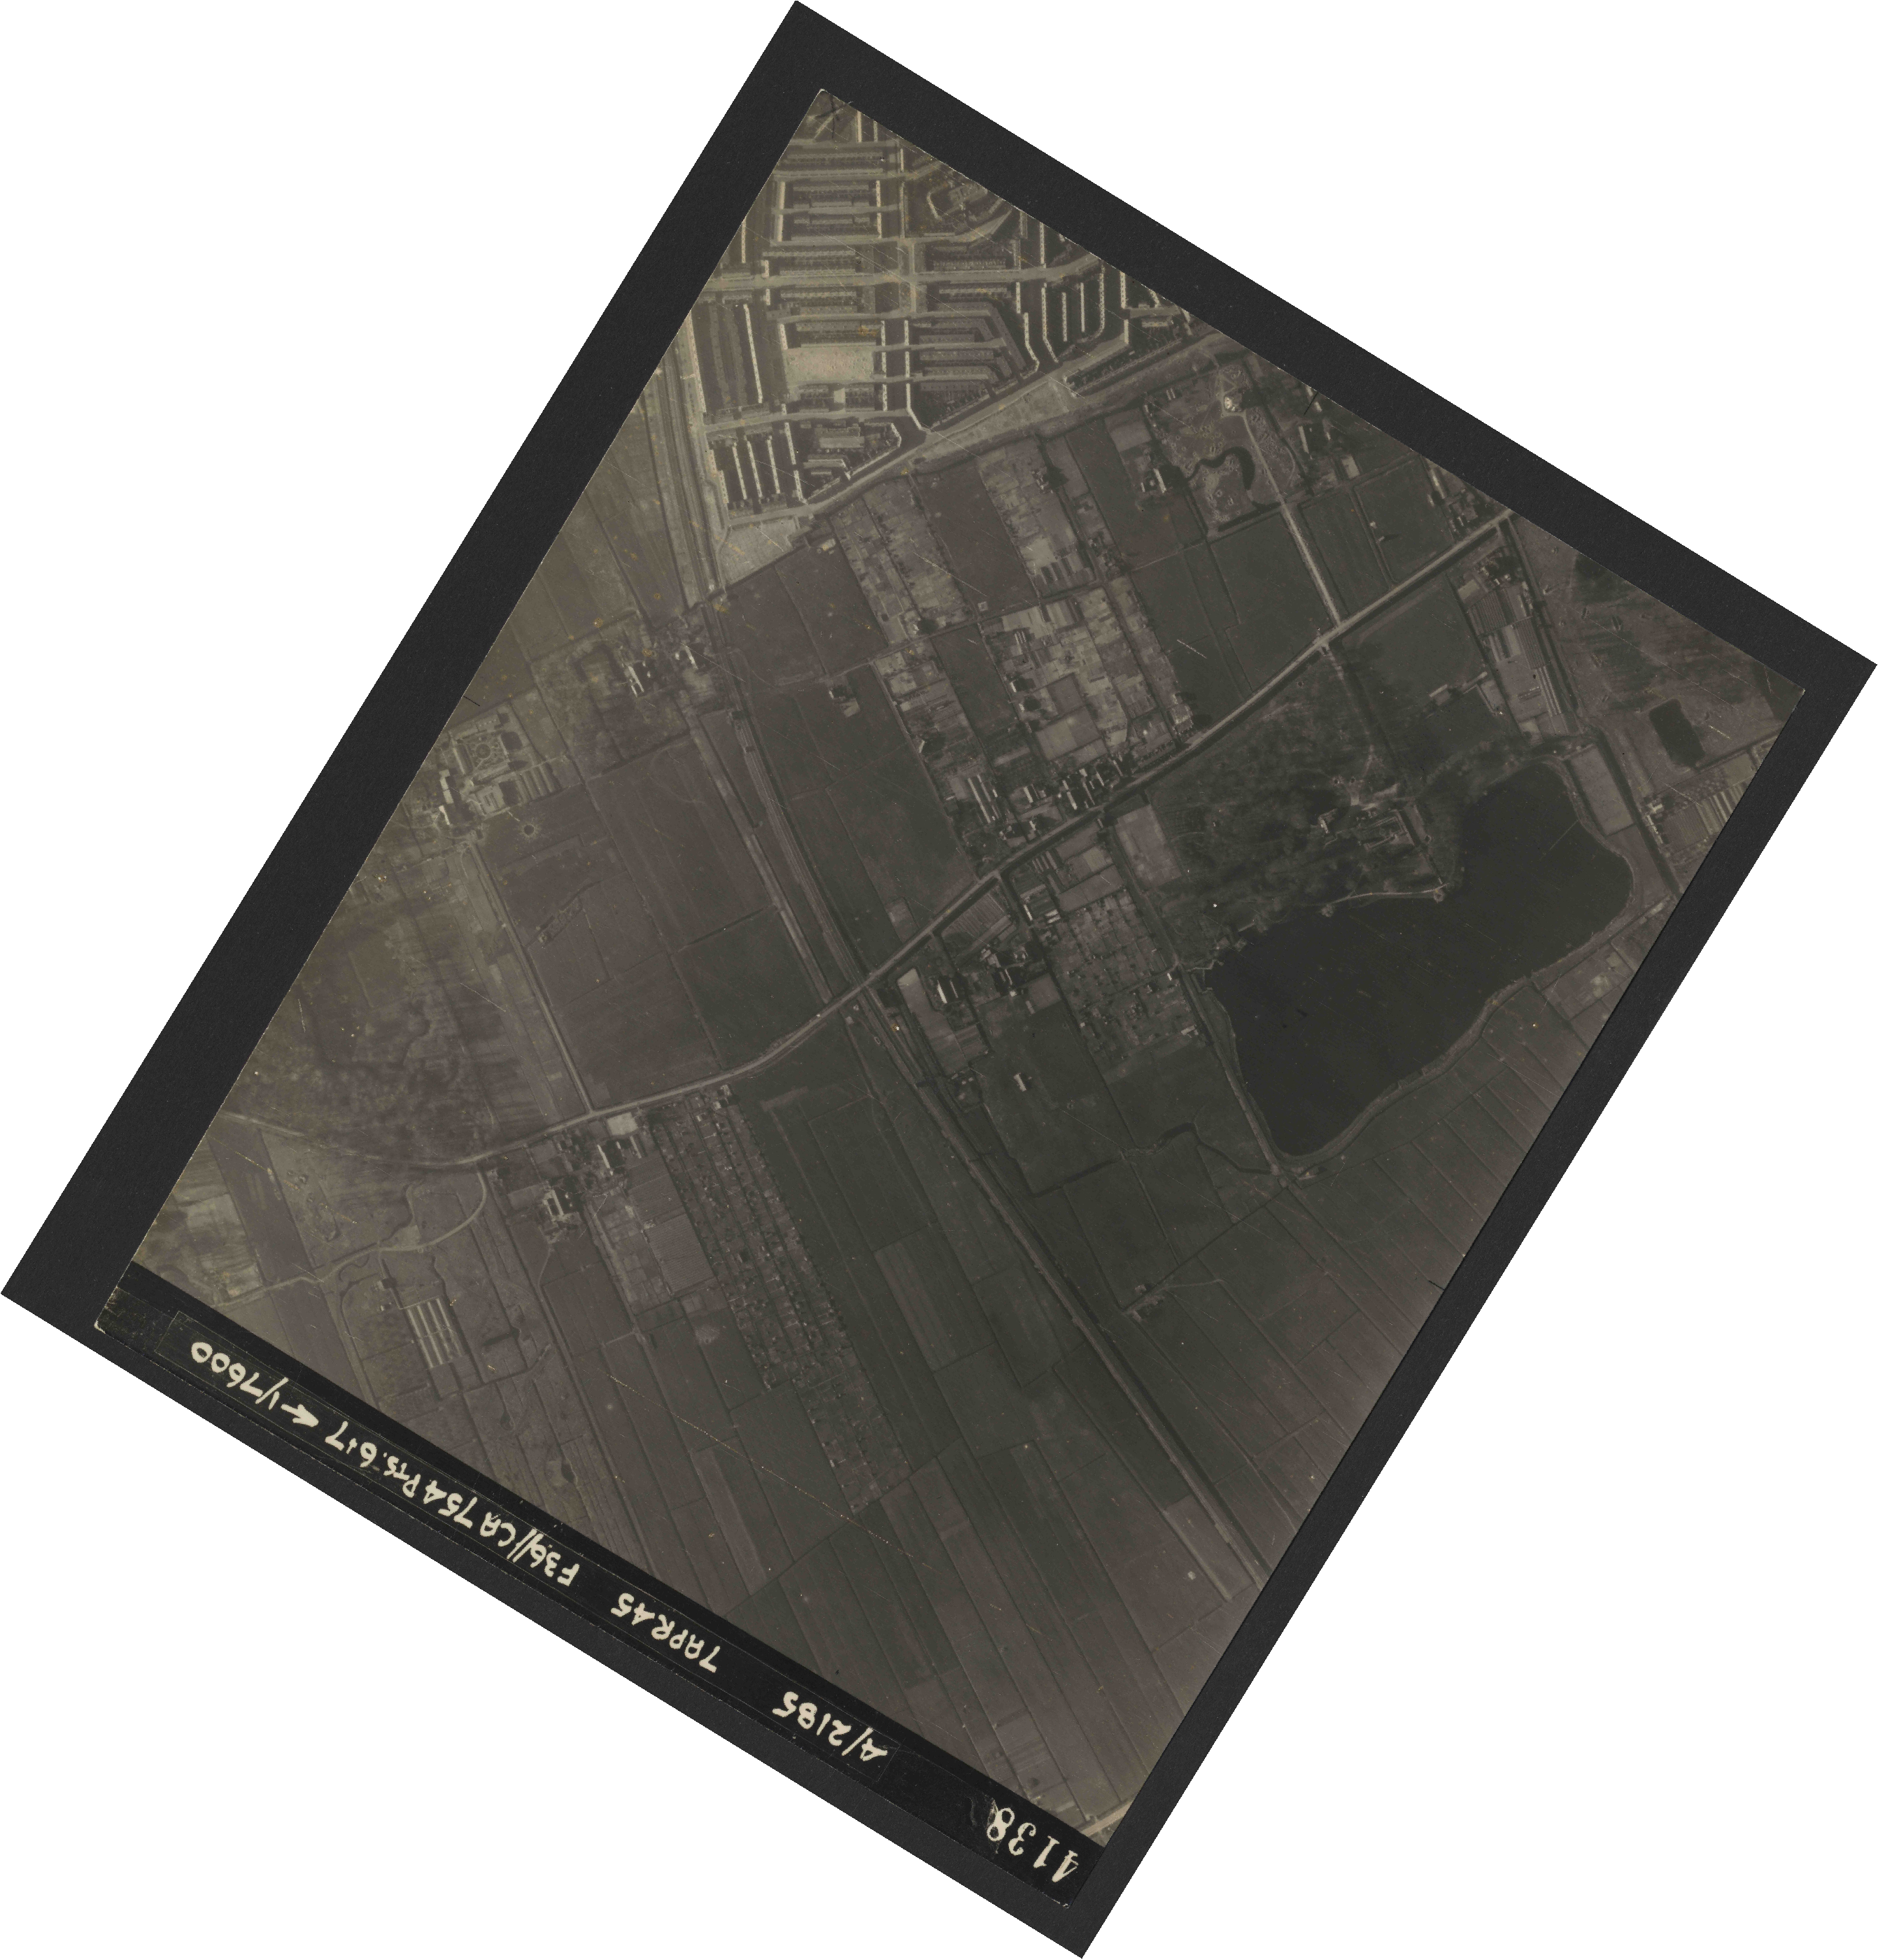 Collection RAF aerial photos 1940-1945 - flight 303, run 13, photo 4138